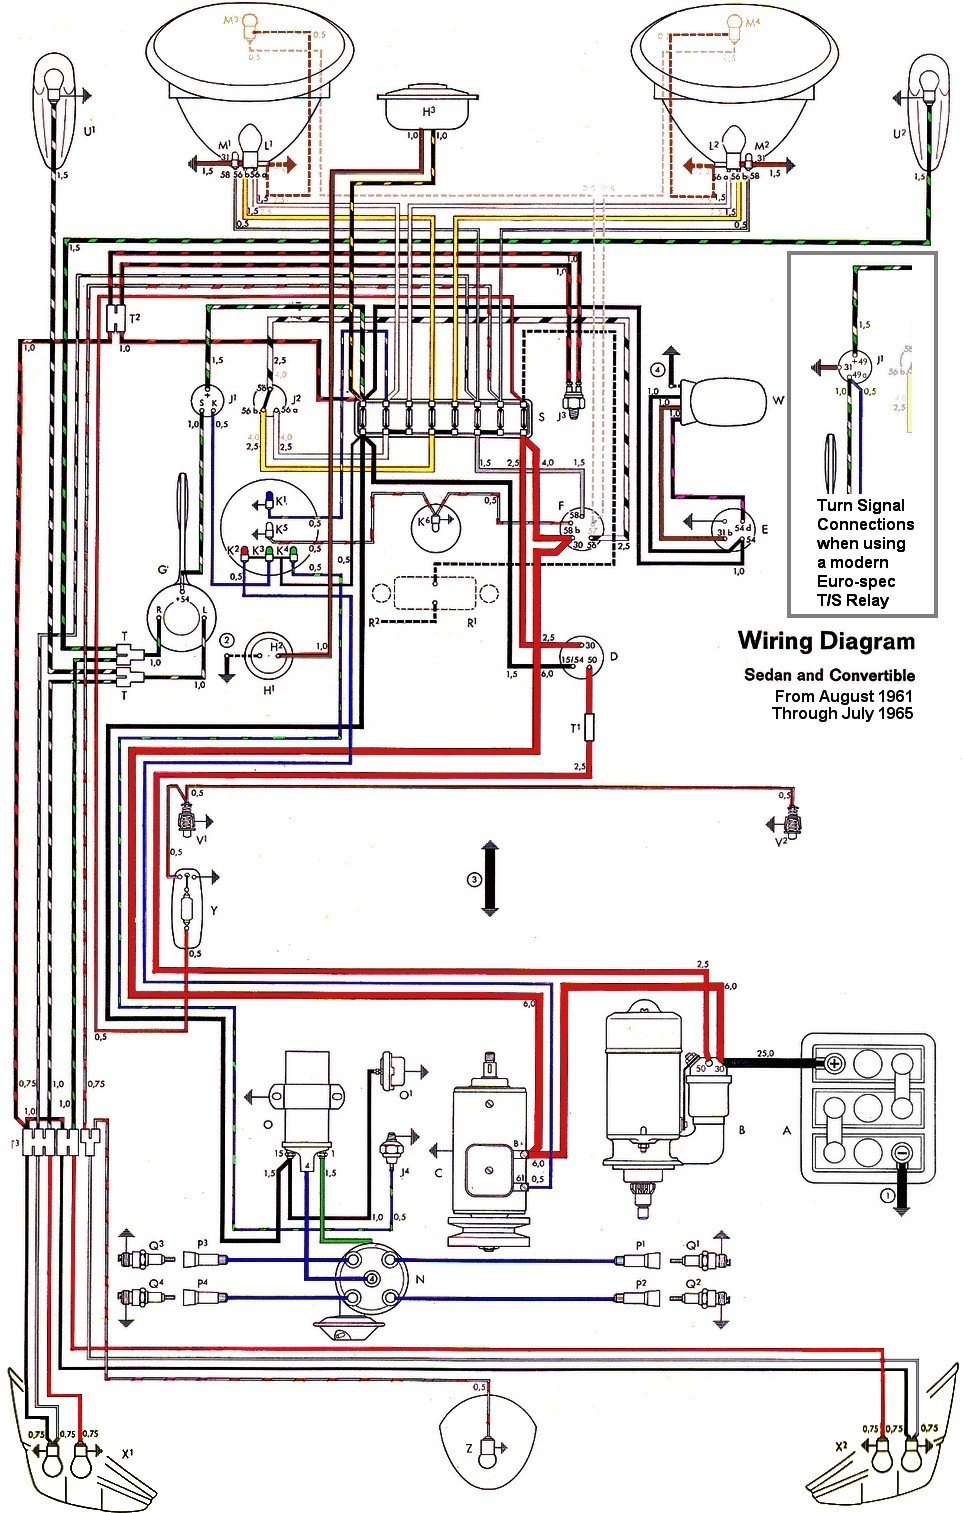 bug_62 65withinset wiring diagram vw beetle sedan and convertible 1961 1965 vw Turn Signal Flasher Wiring-Diagram at gsmx.co